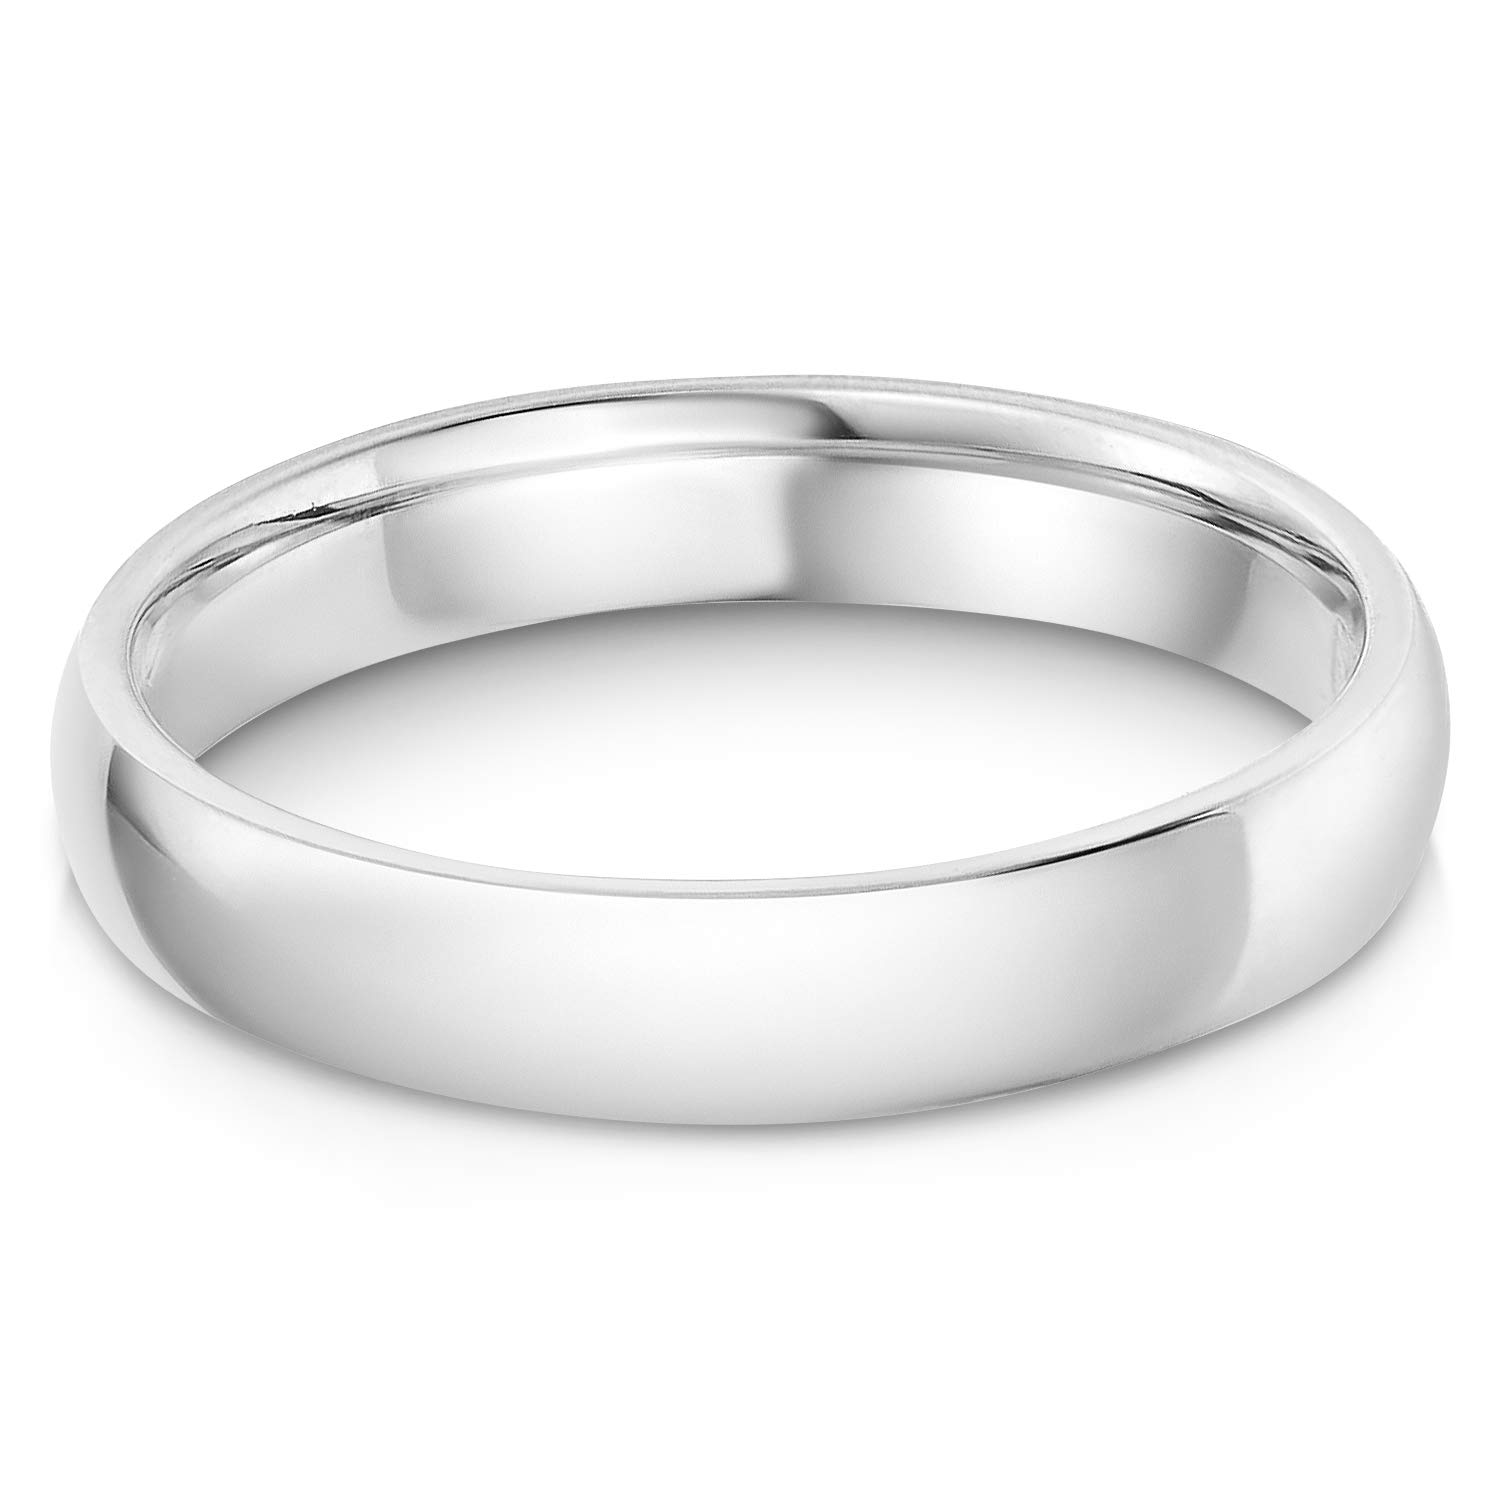 14k Solid Yellow OR White Gold 4mm Plain Standard Classic Fit Traditional Wedding Band Ring Ioka